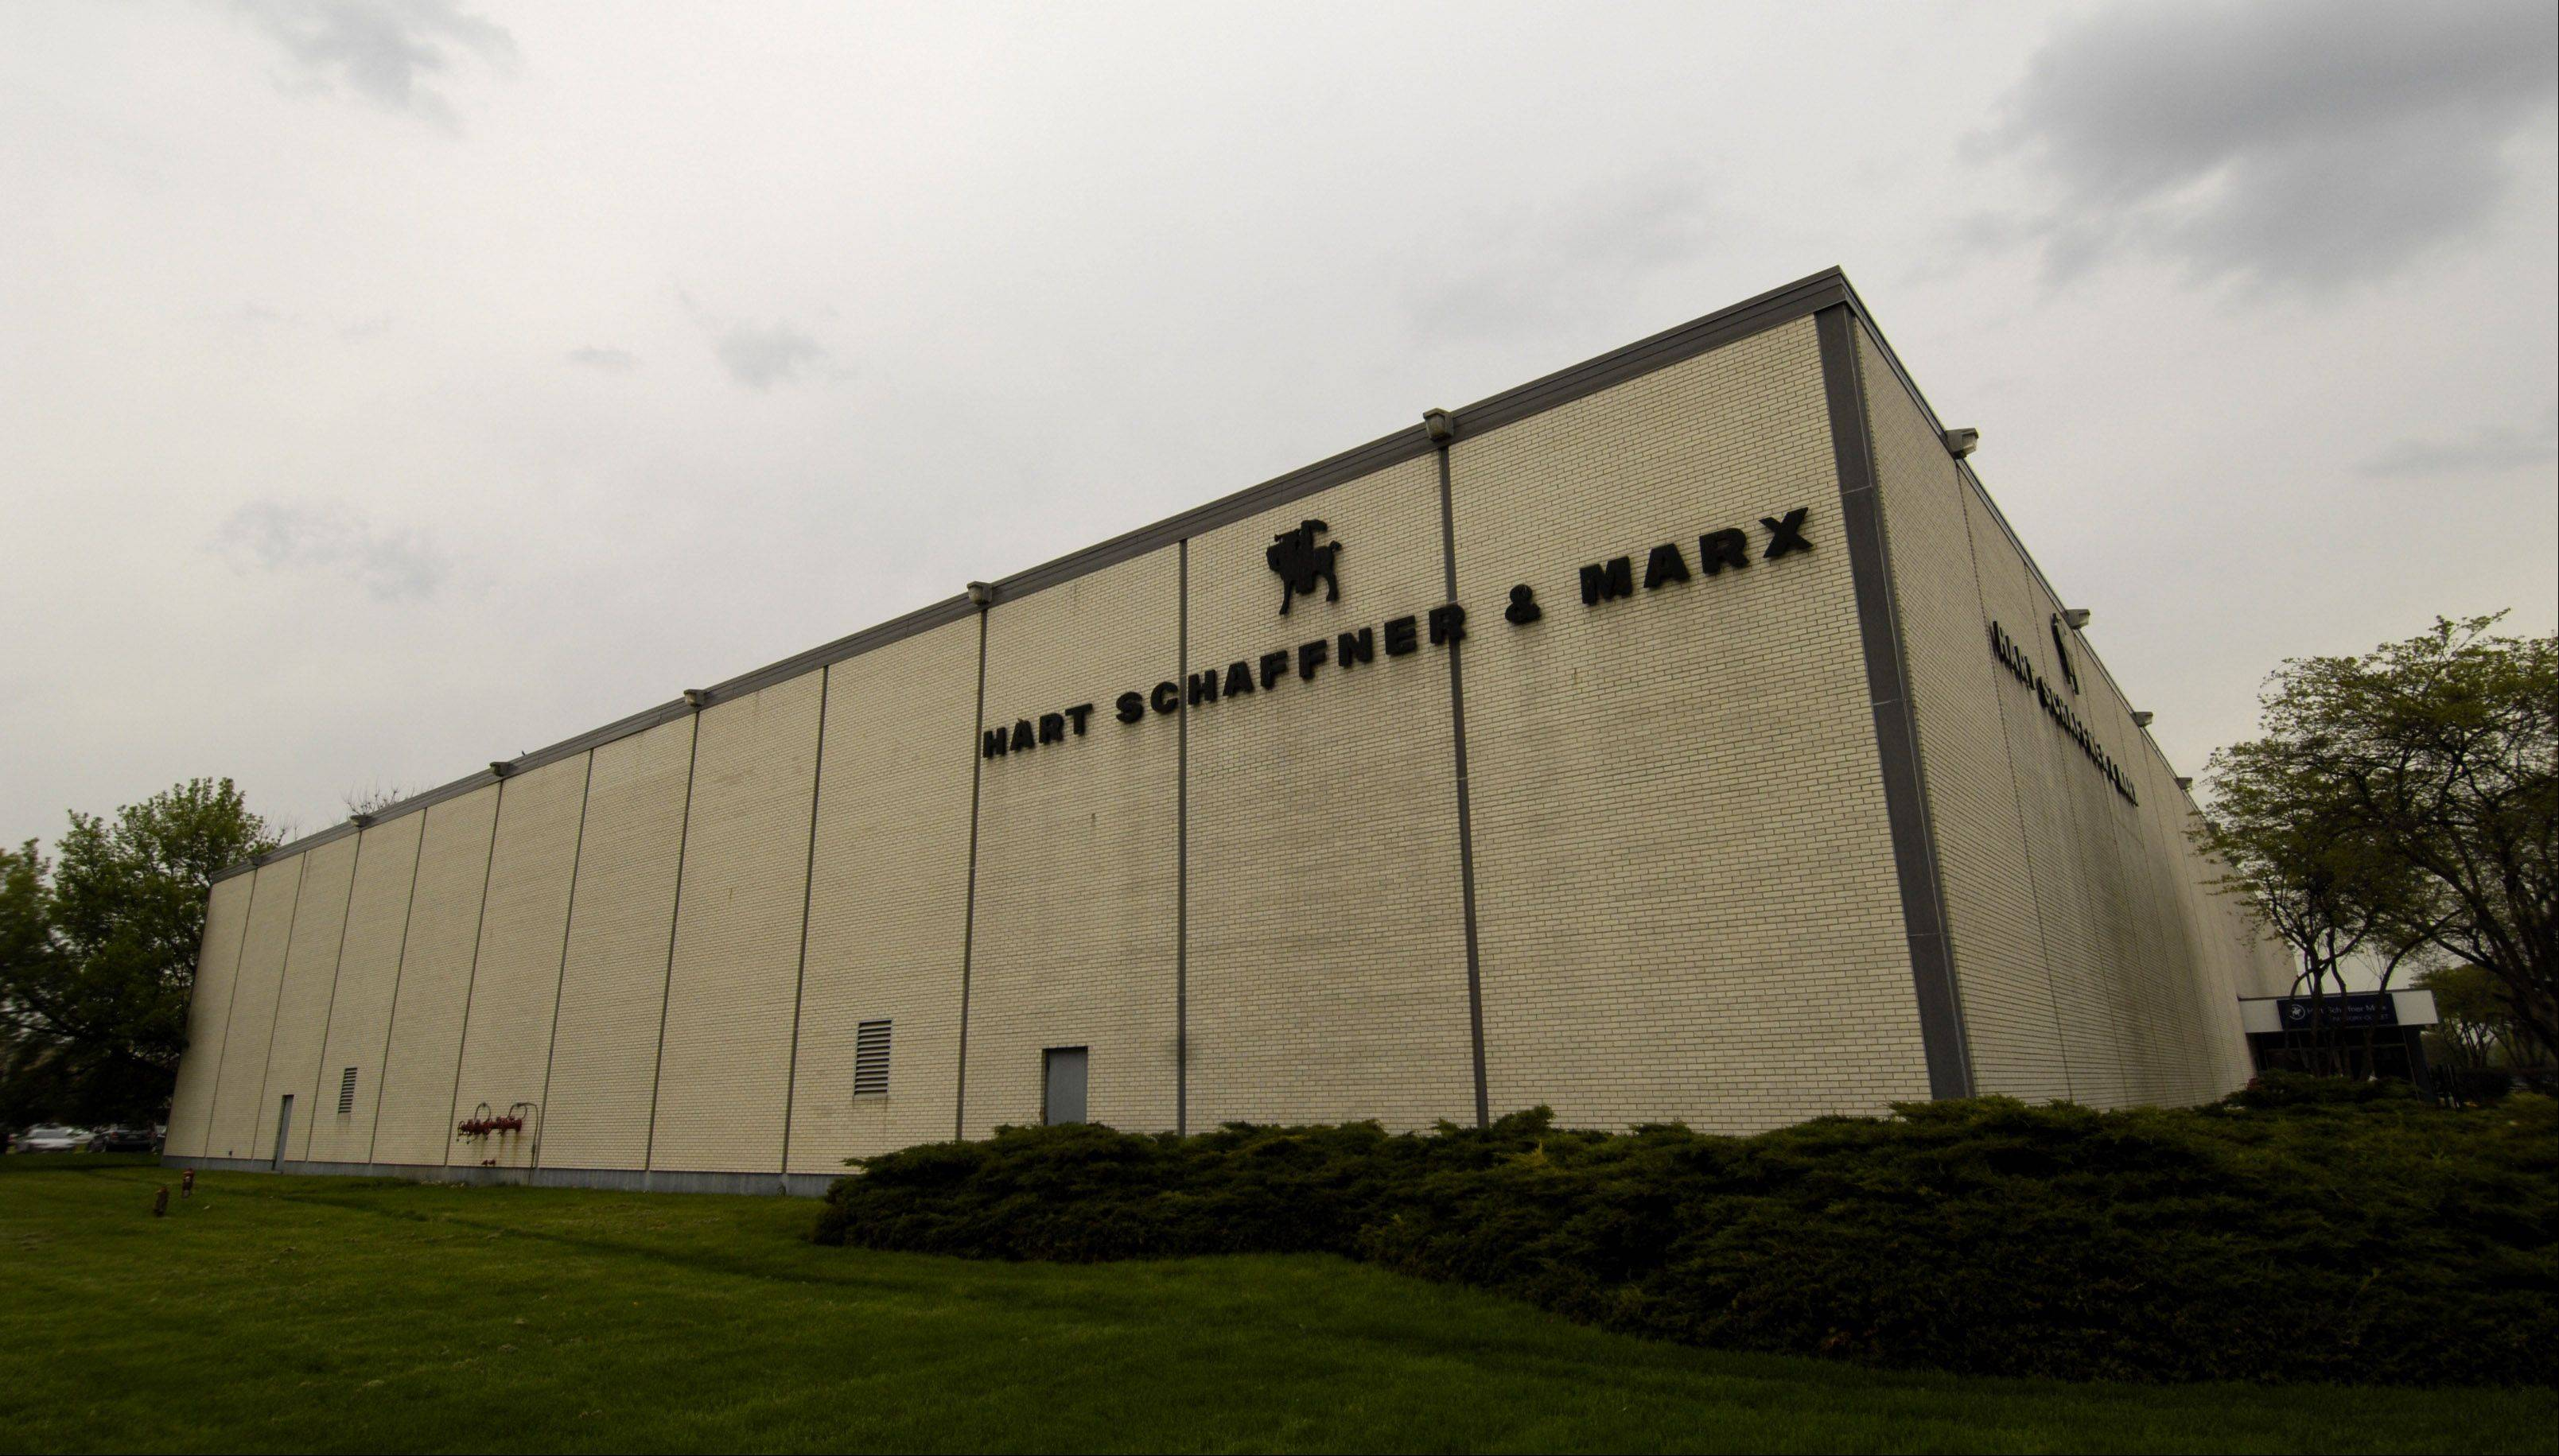 Hart Schaffner & Marx, which emerged from bankruptcy in 2009, is seeking a $1.5 million federal grant to expand its operations and workforce at its Des Plaines factory.